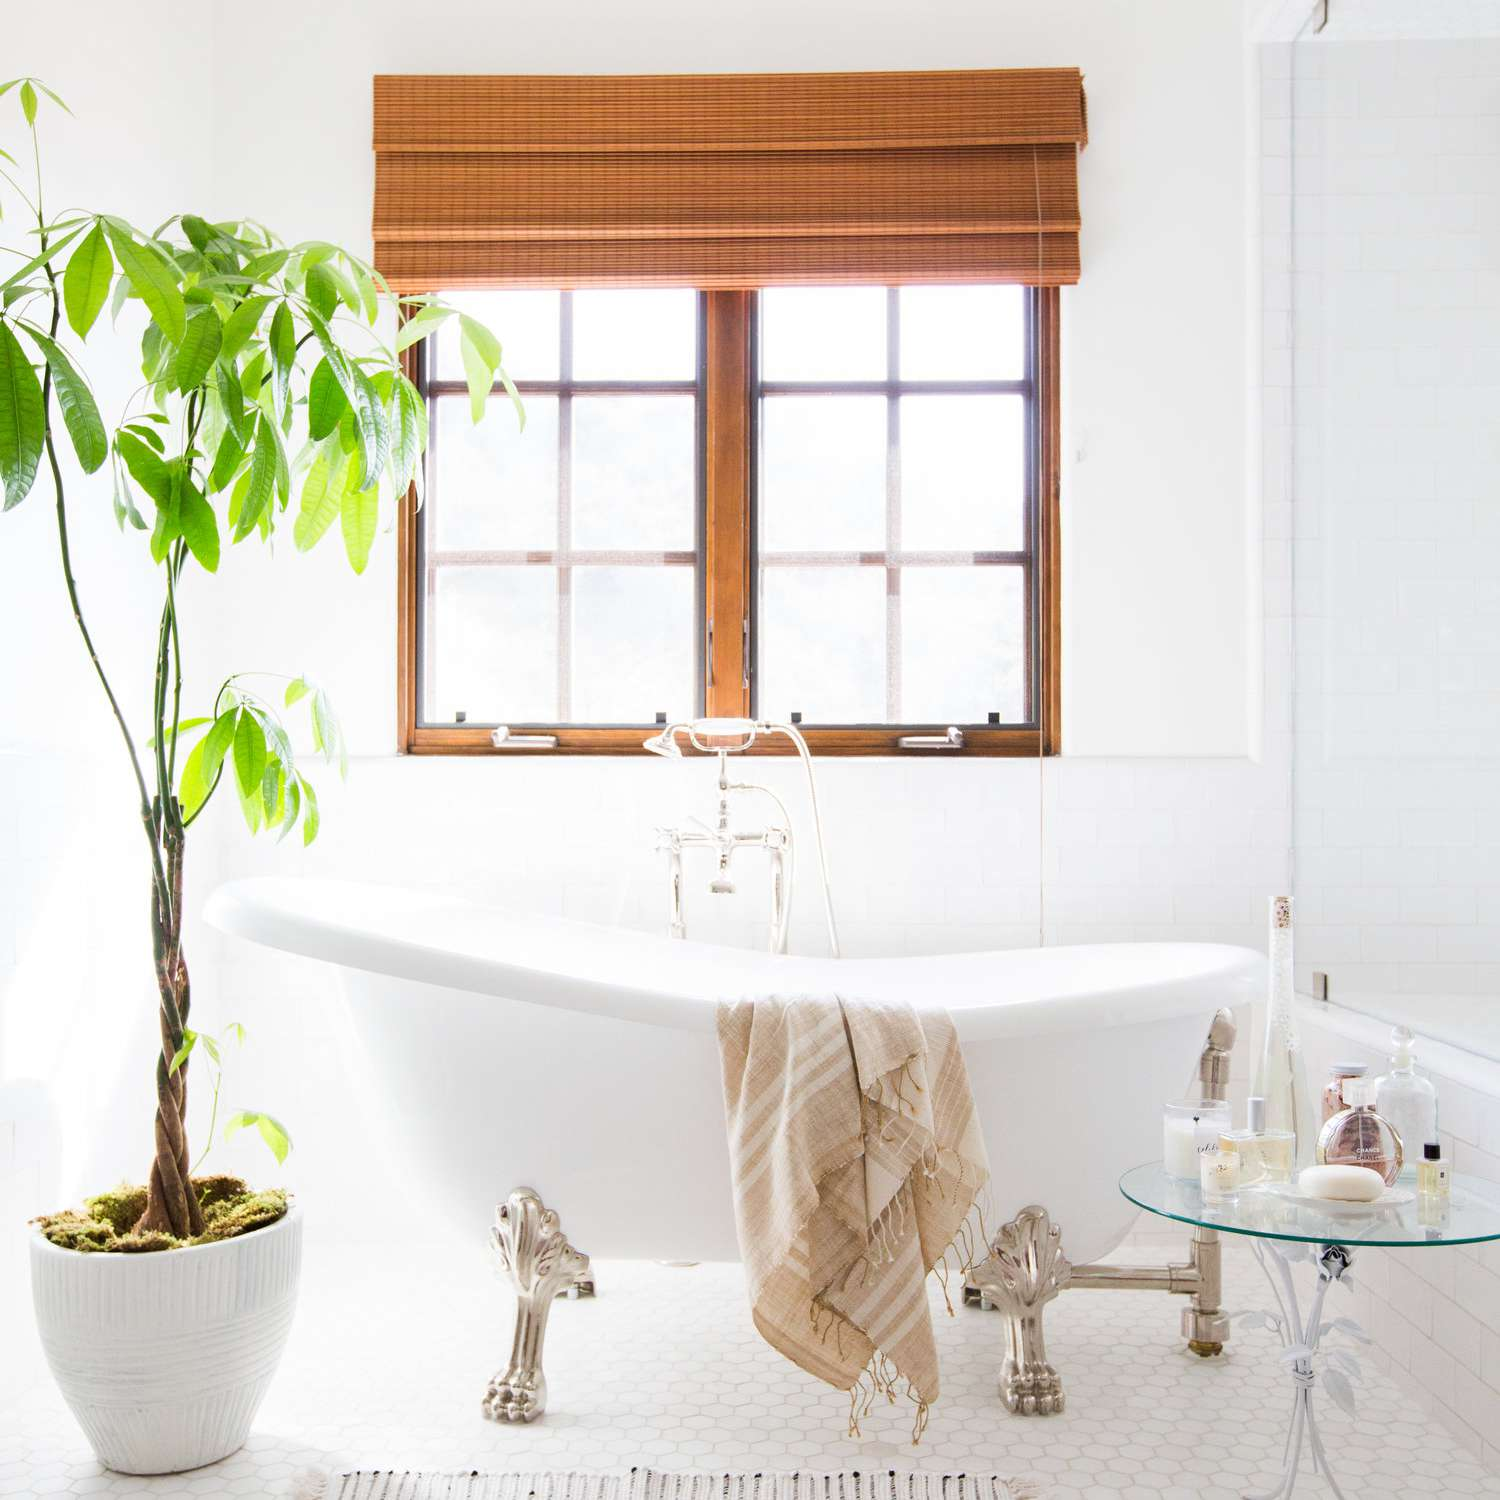 Light, bright, and airy bathroom with clawfoot tub